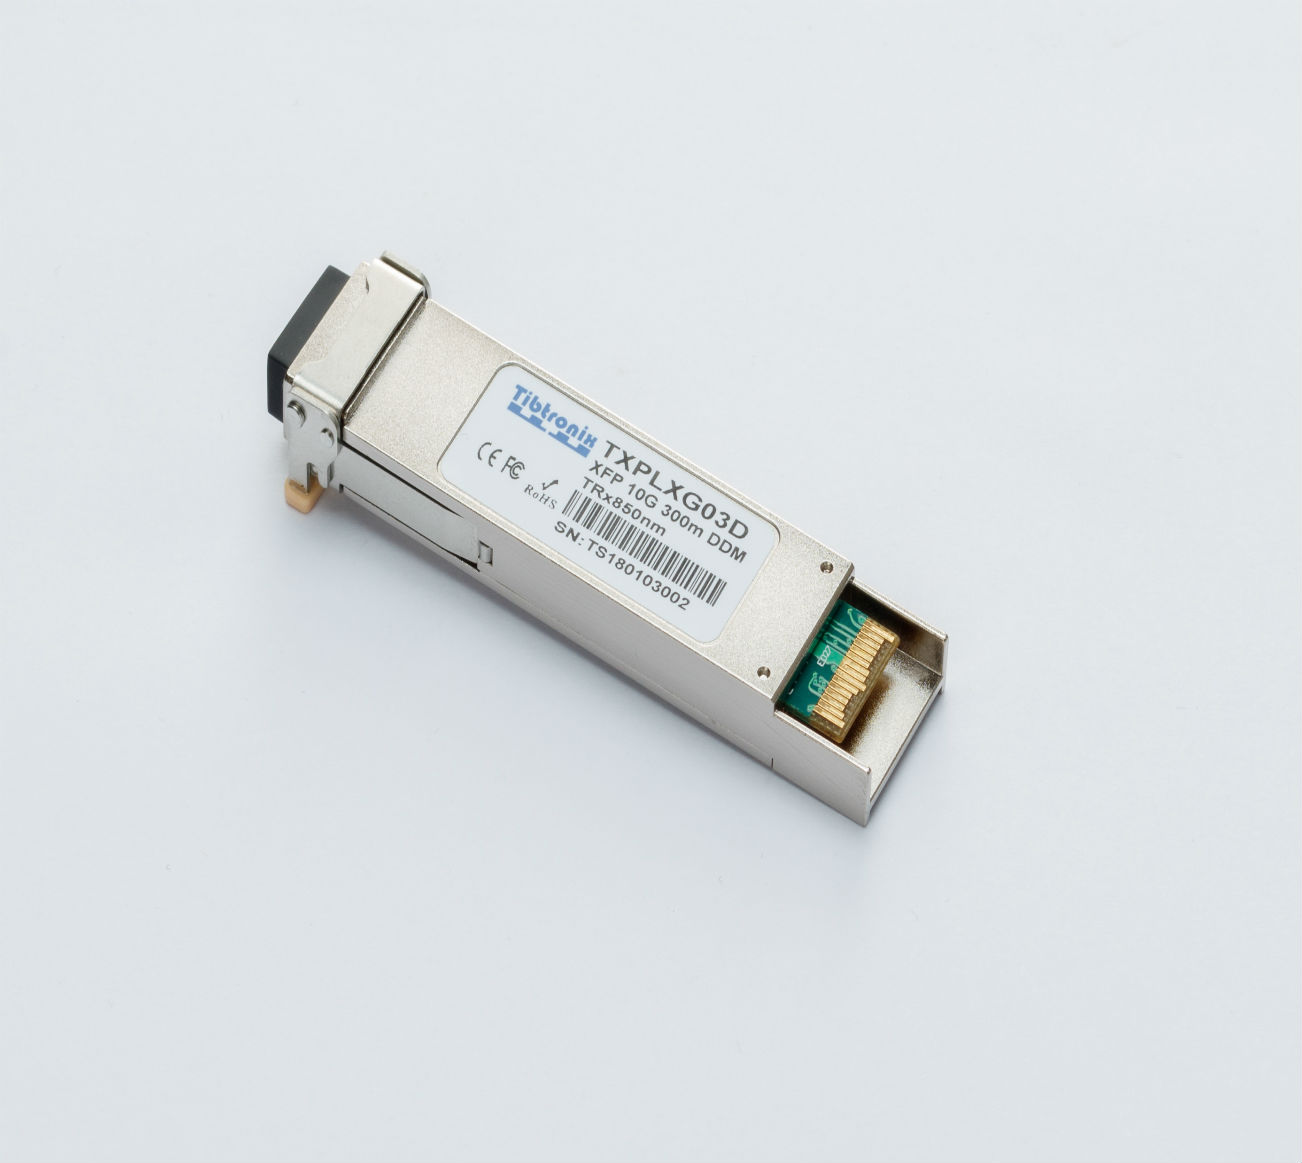 10GBASE-SR XFP 850nm 300m DDM Transceiver10G XFP Tunable